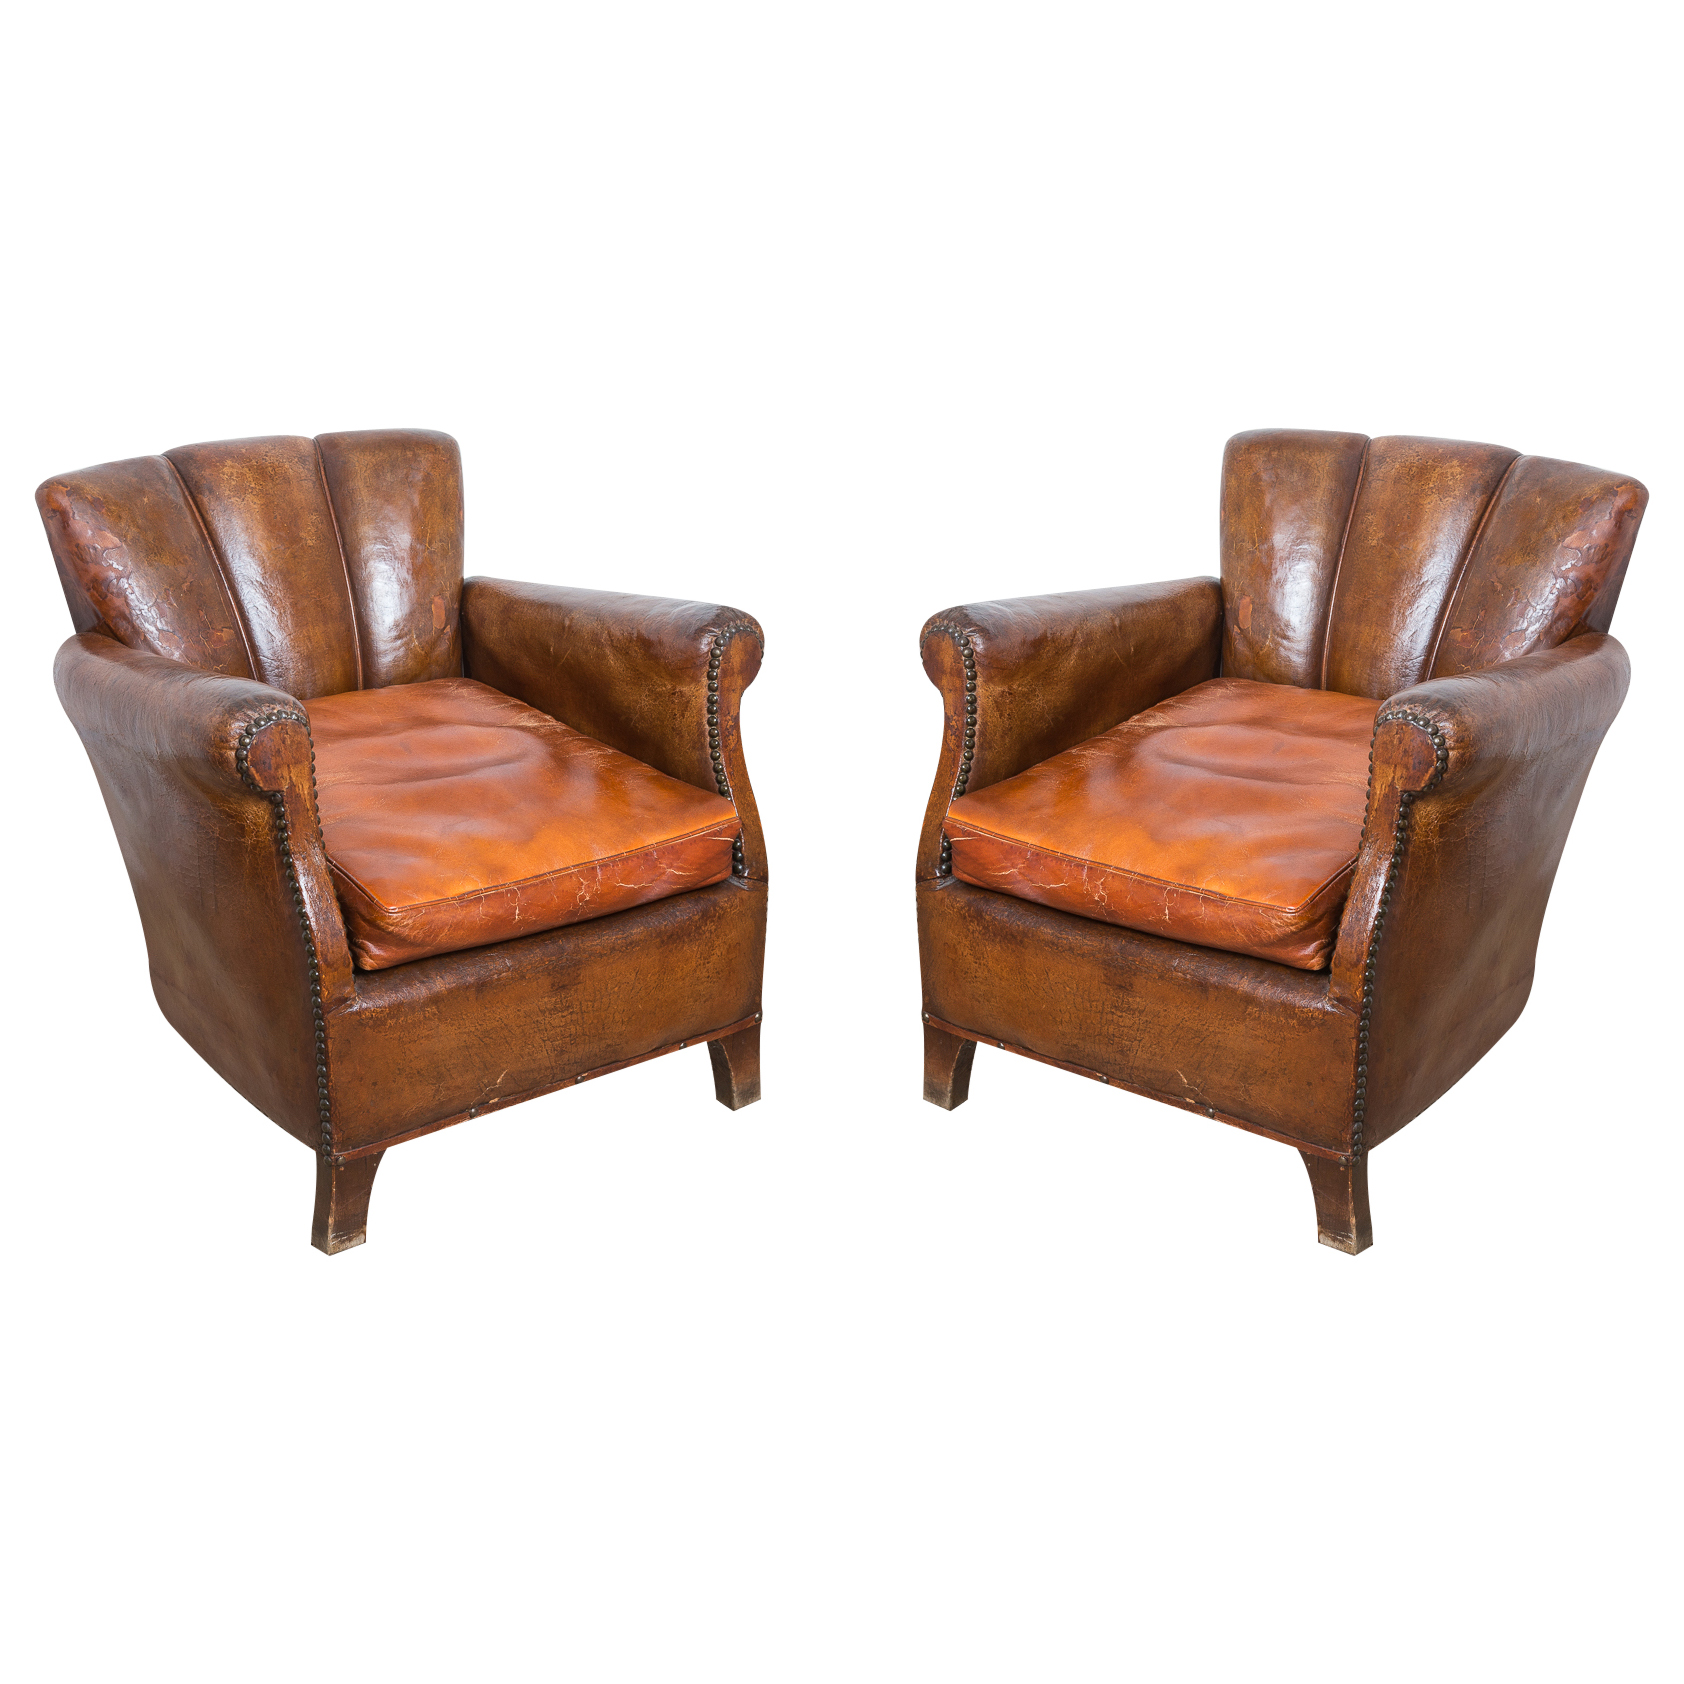 Antique French Chairs Antique French Leather Deco Chairs On Antique Row West